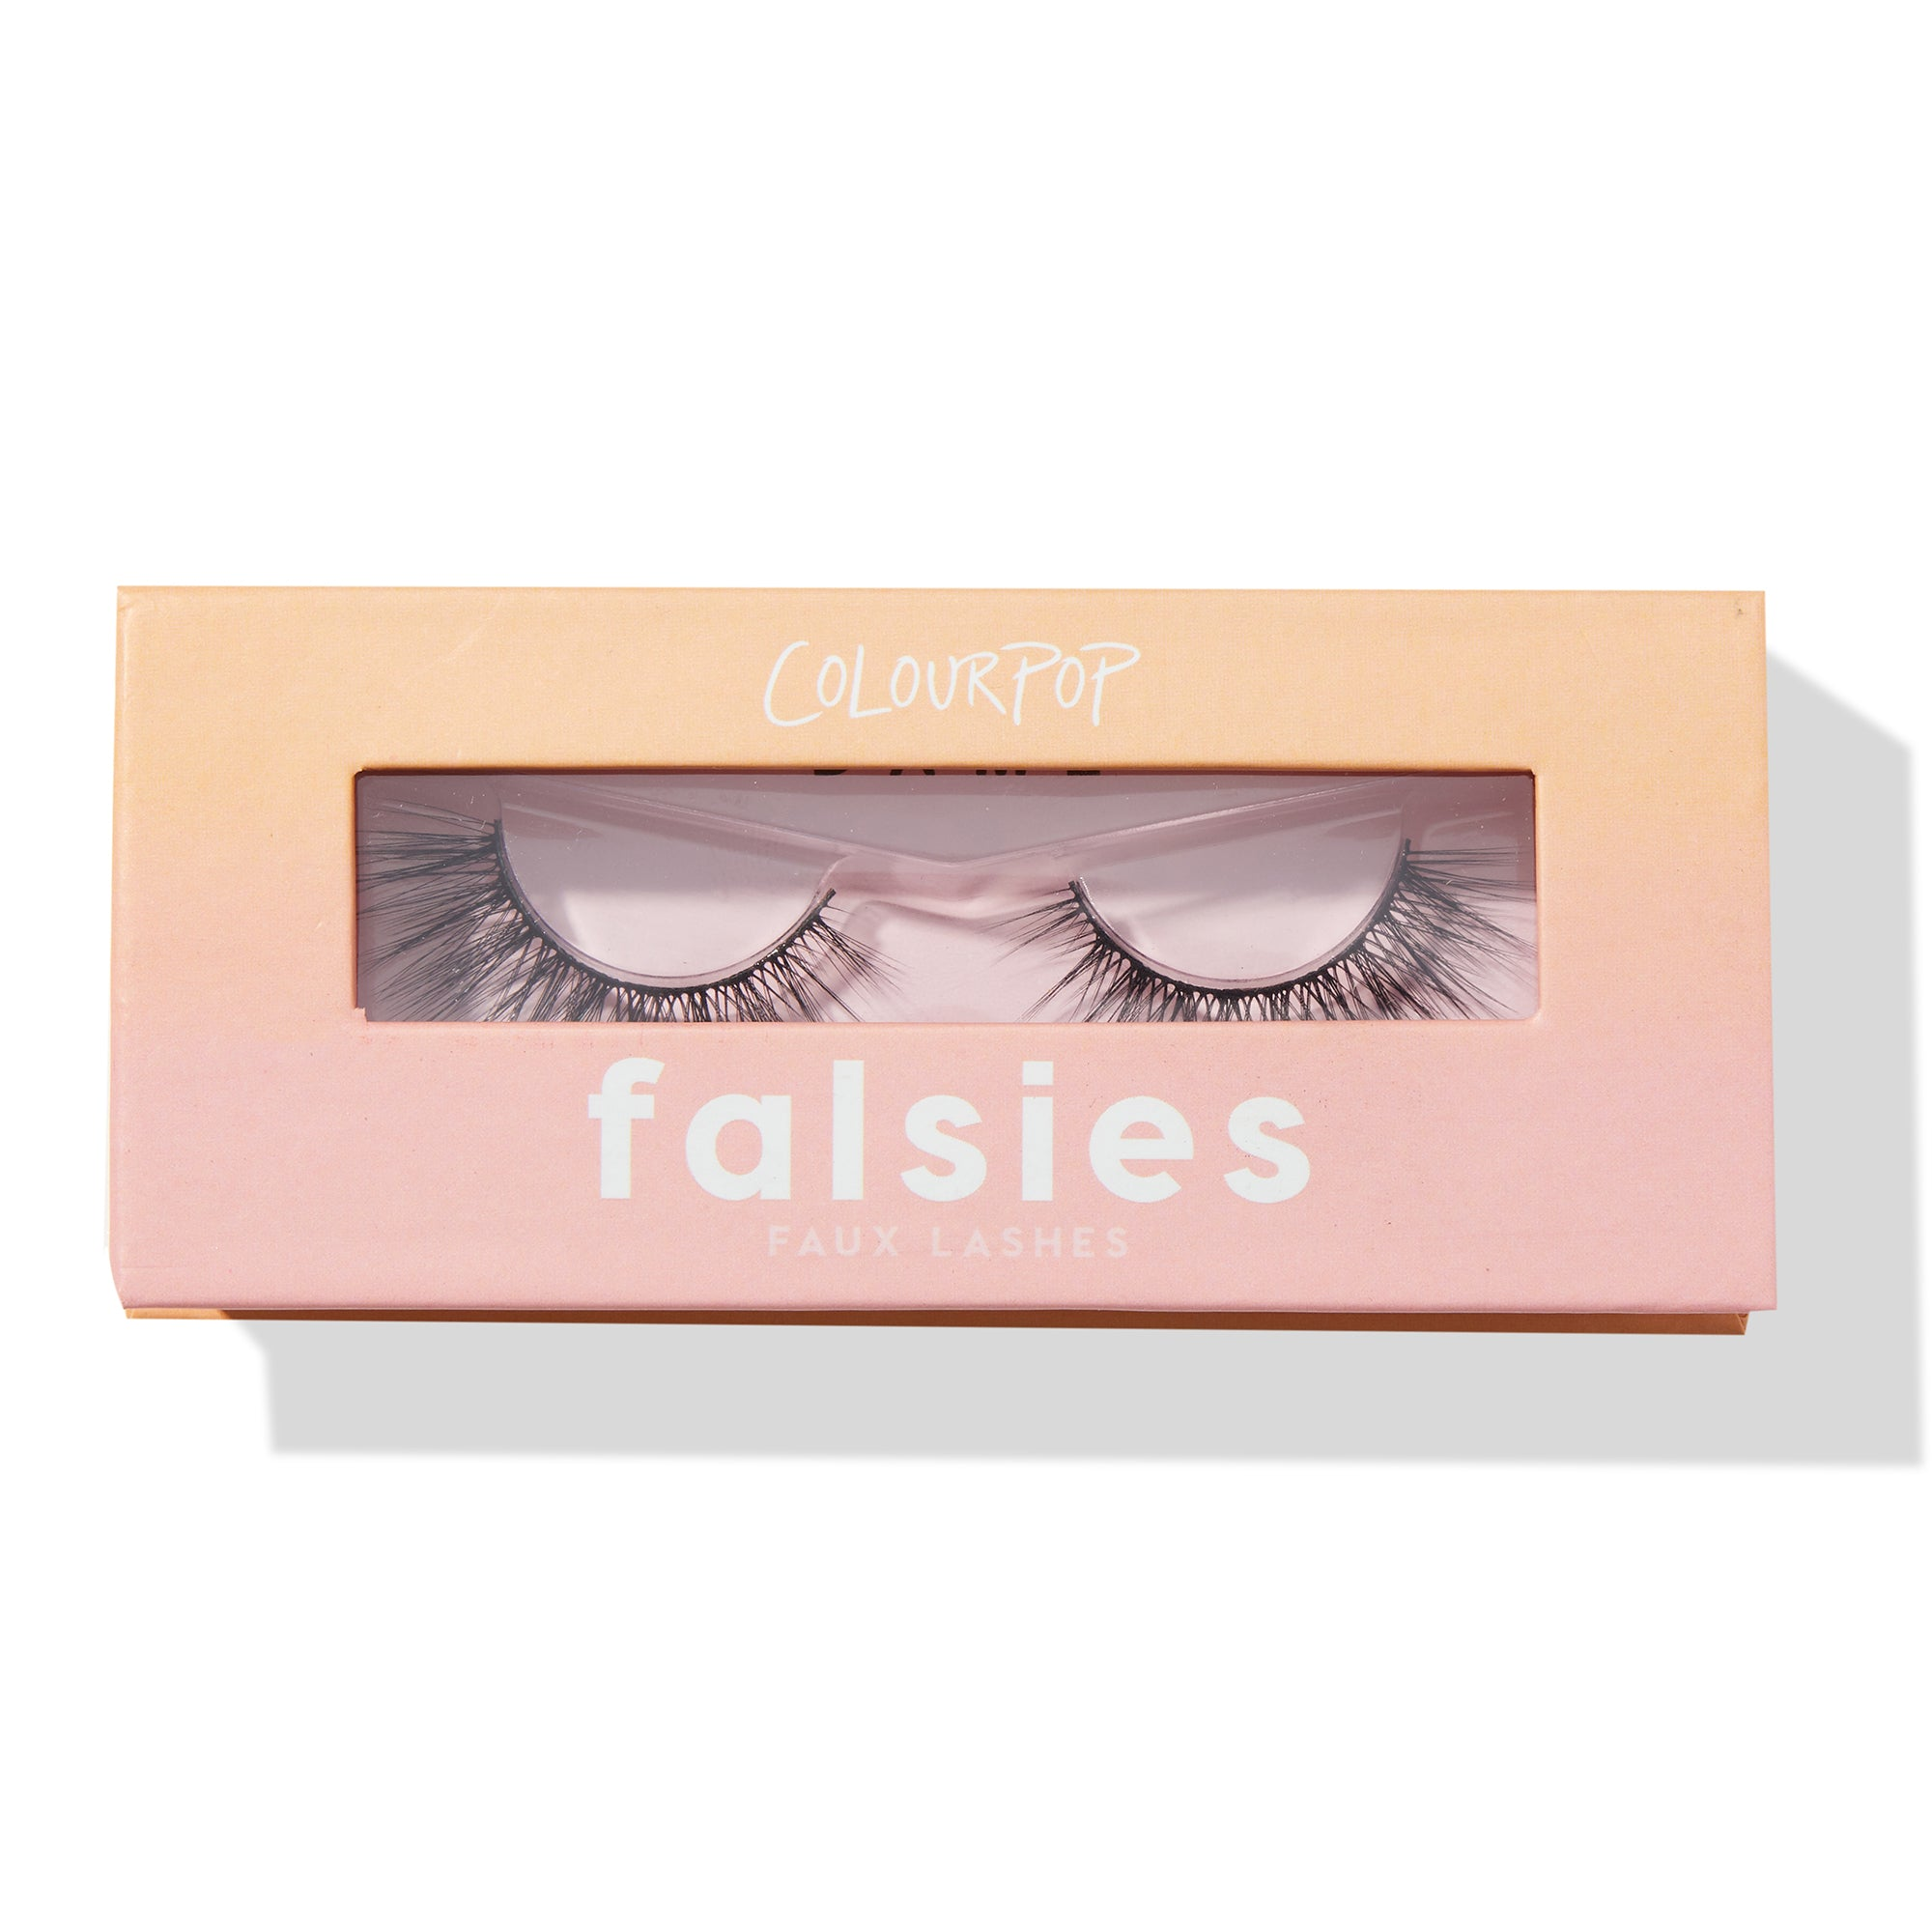 Minx Falsies Faux Lashes by Colourpop #20